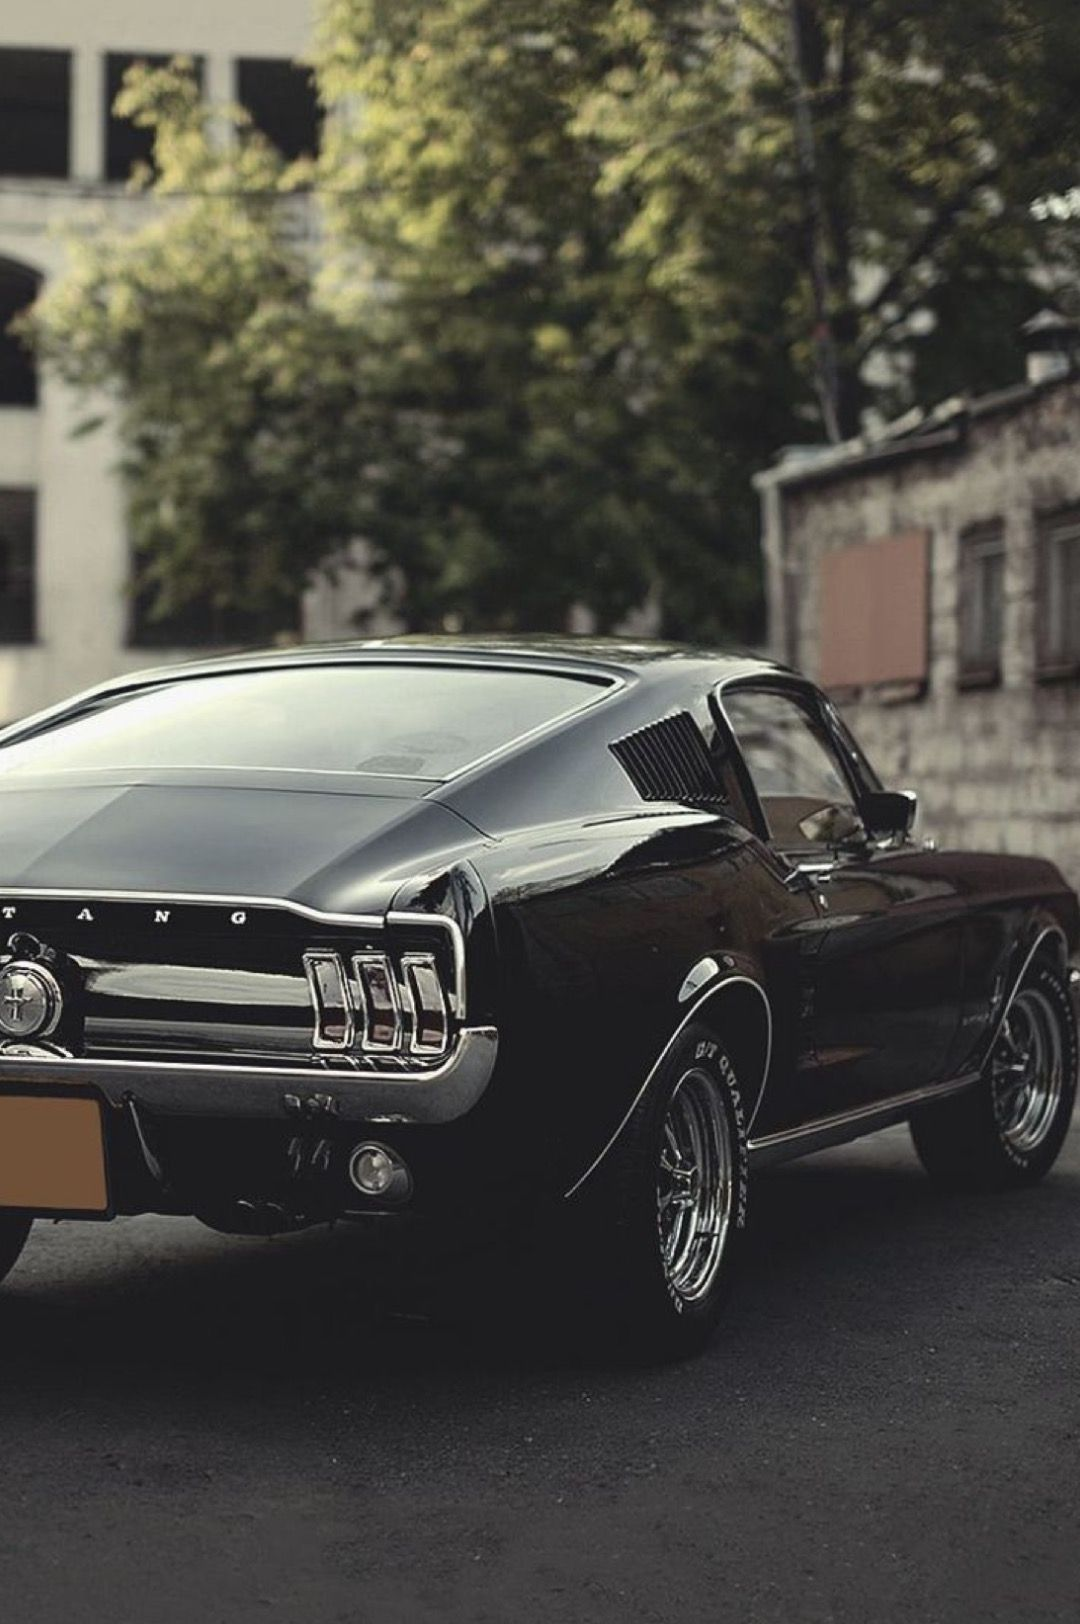 Muscle Car Vintage Mustang Dream Cars Pinterest Mustang